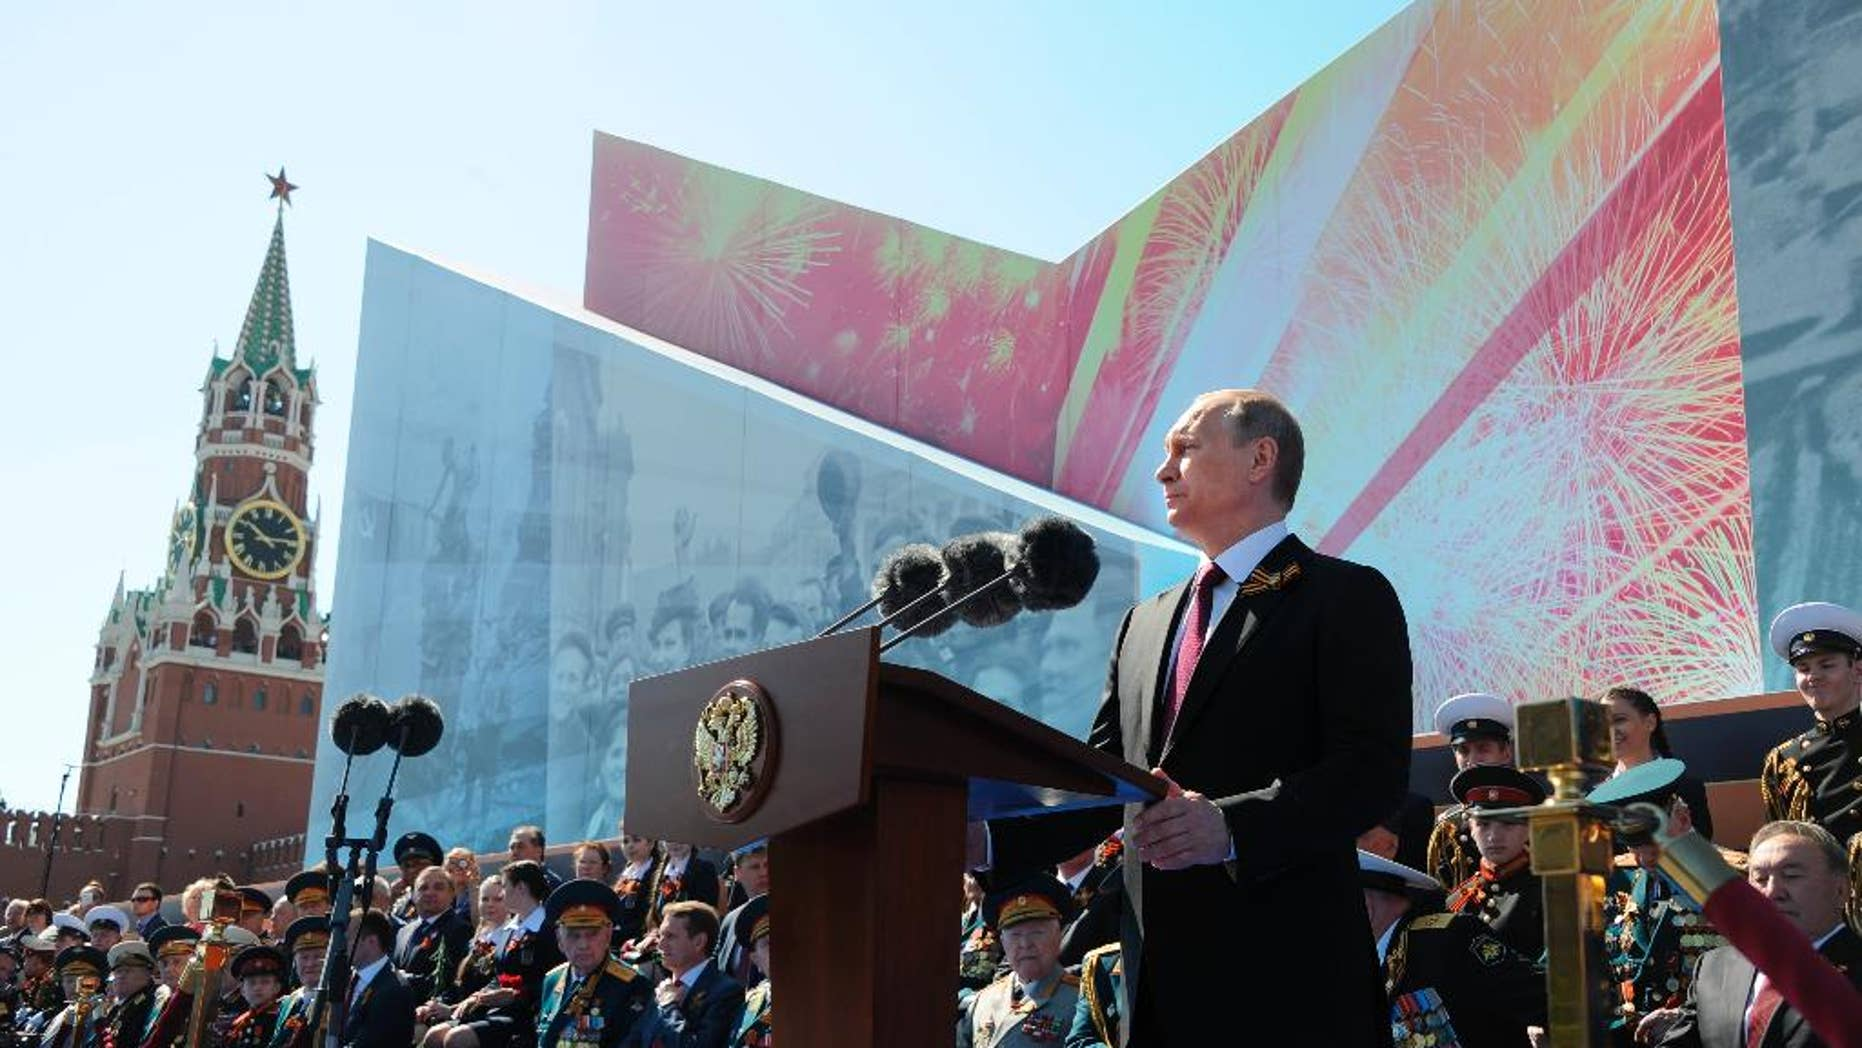 Russian President Vladimir Putin speaks during the Victory Day military parade marking 71 years after the victory in WWII, in Moscow's Red Square.